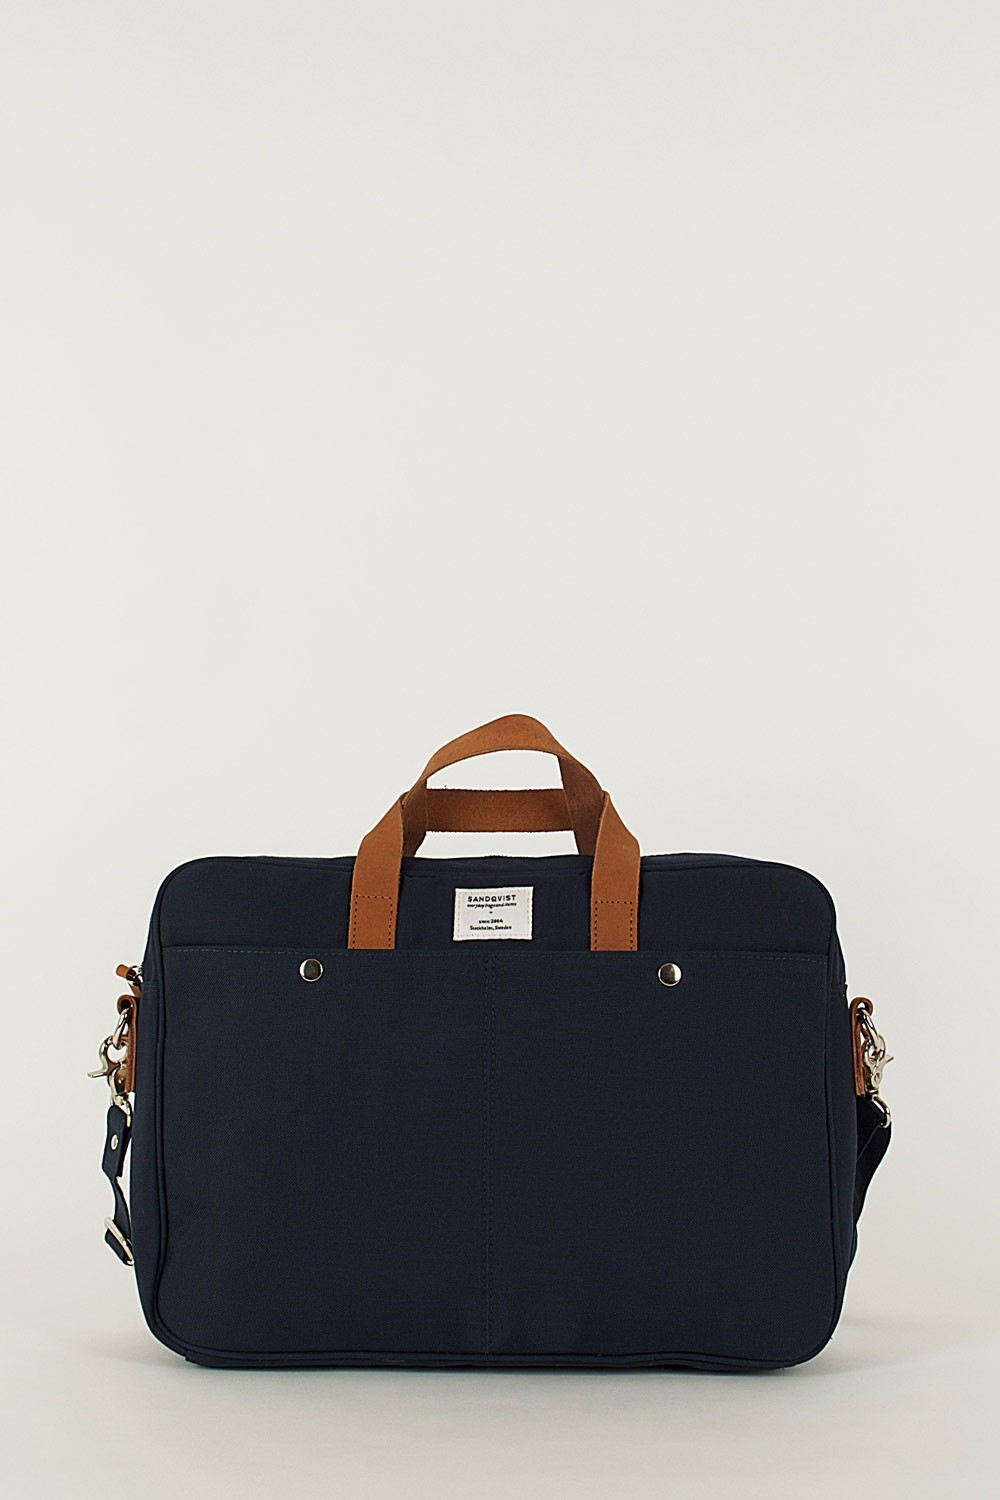 monopolist:  Sandqvist Blue Mats Laptop Bag